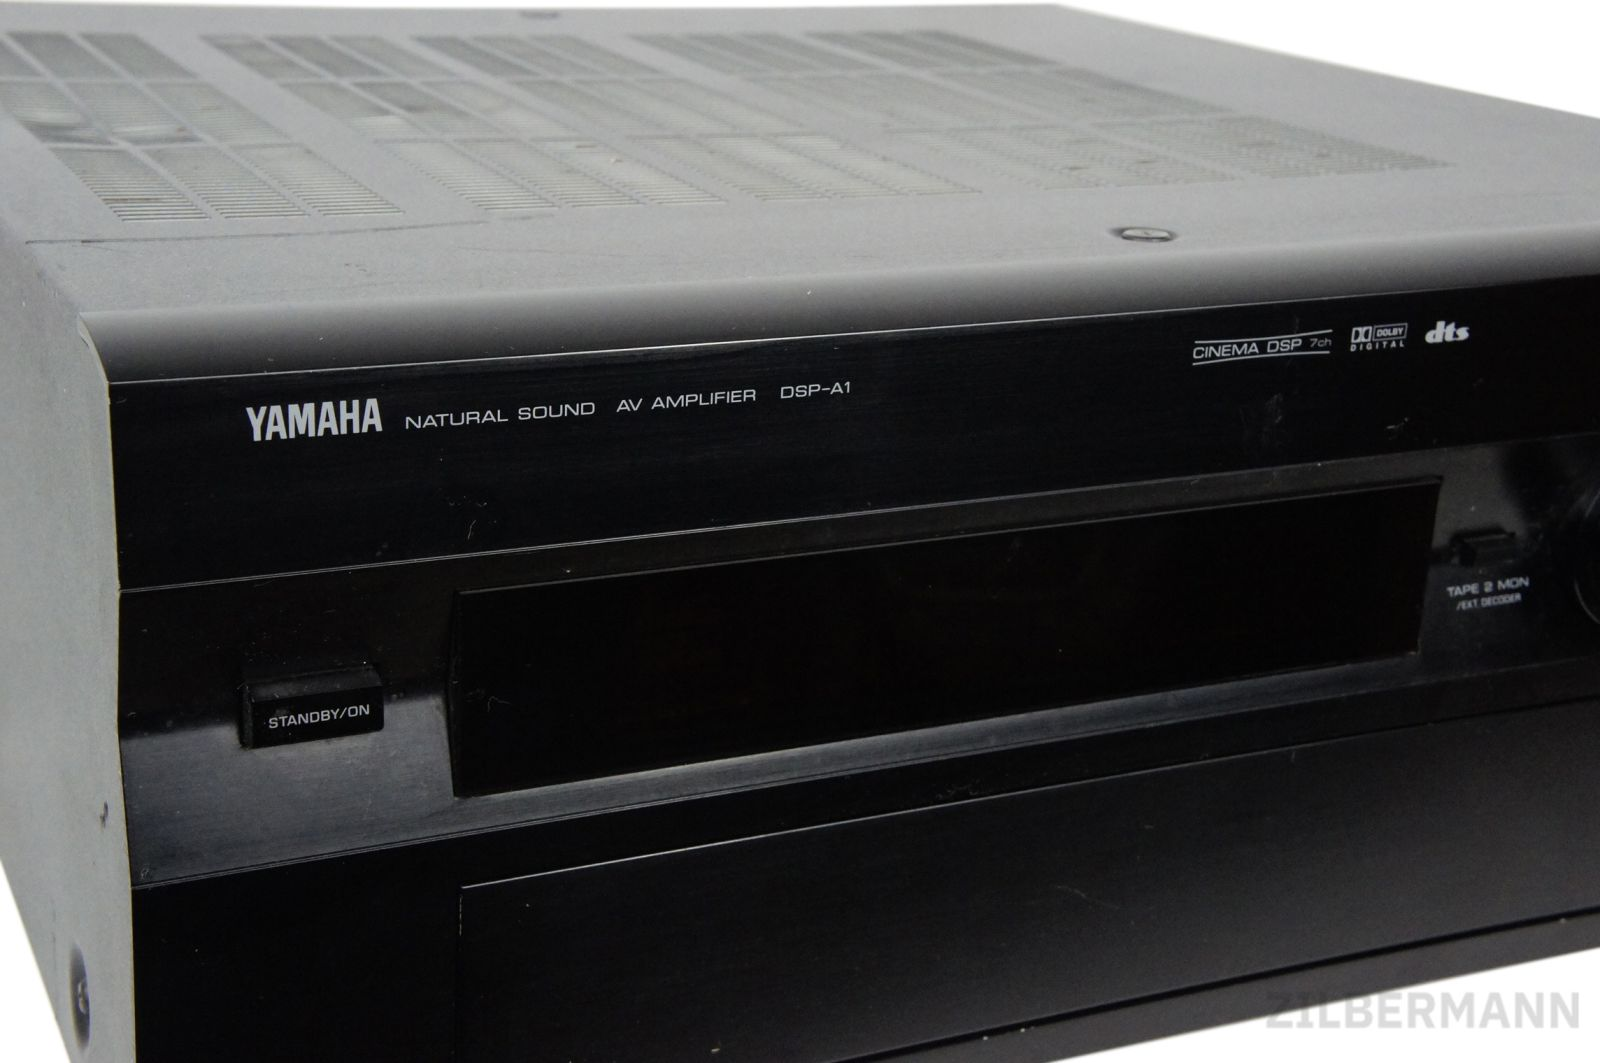 Yamaha_7.1_High_End_AV_Receiver_DSP-A1_Natural_Sound_03